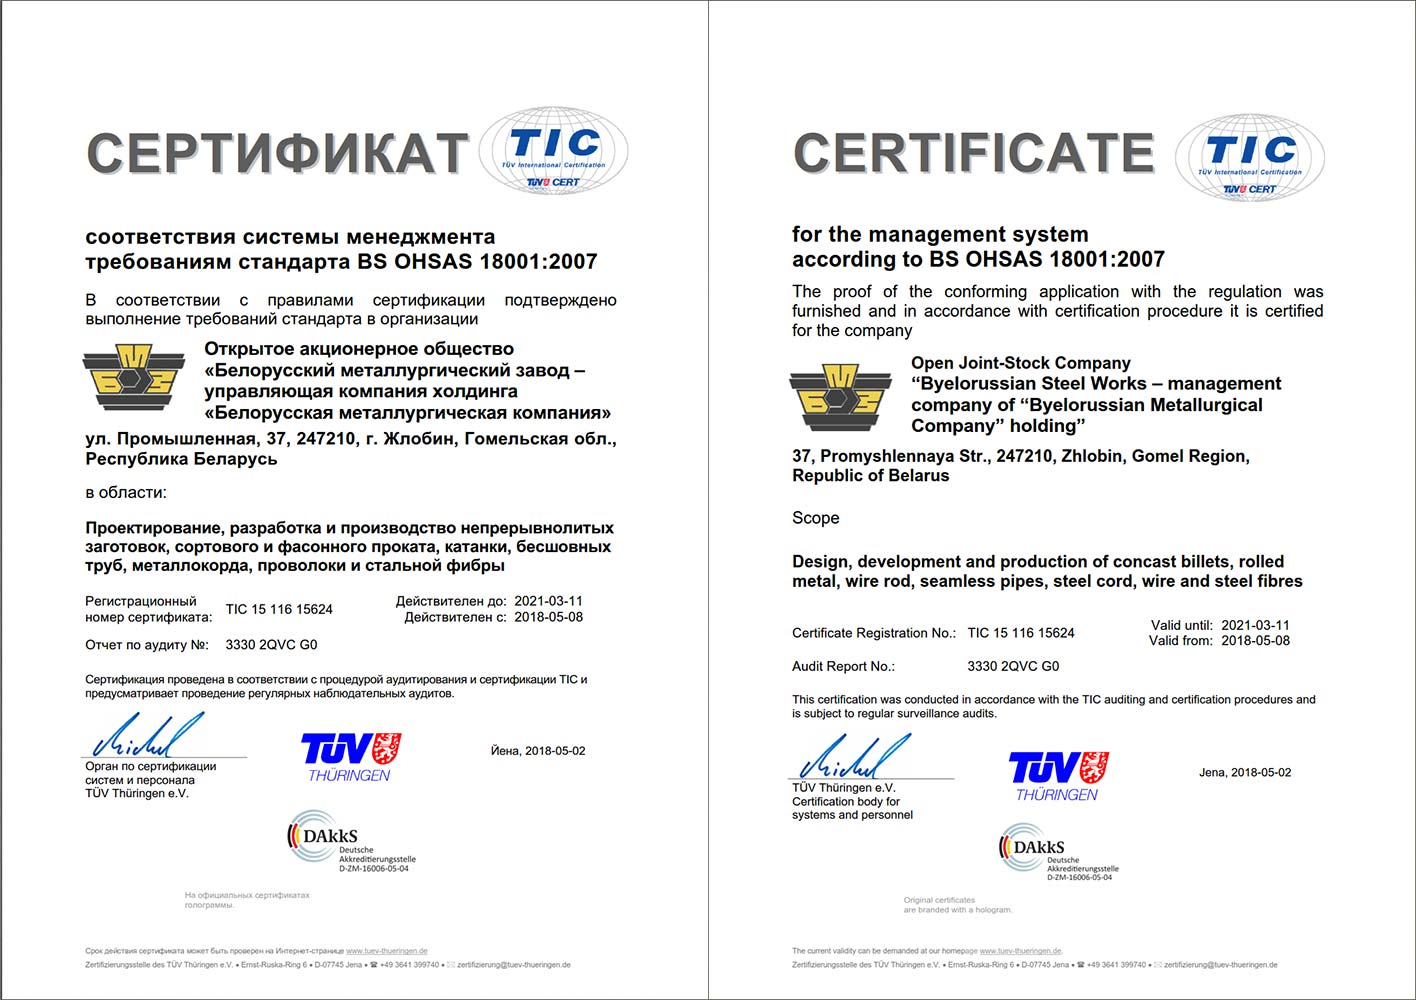 Certificate № TIC 15 100 15624 (TUV Thuringen e.V.) of QMS conformity with the requirements of international standard BS OHSAS 18001:2007 to design, develop and produce concast billet, rolled product, wire rod, seamless pipes, steel cord, wire and steel fiber